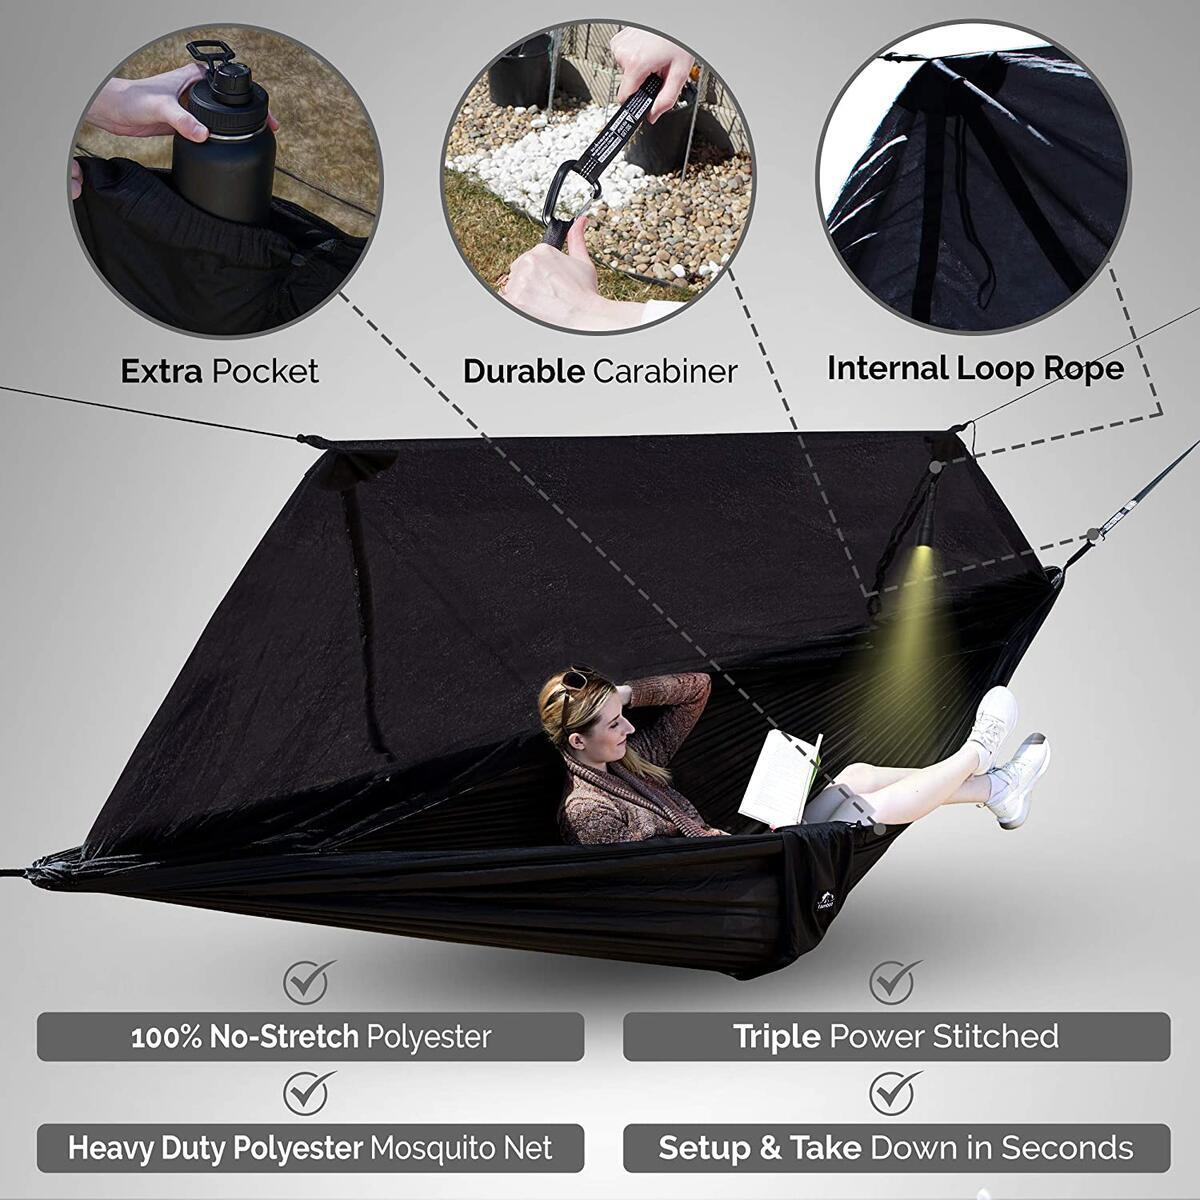 tamboo Camping Hammock with Mosquito Net - Double Hammock for Outdoor Travel, Hiking, Survival Tent with A Pillow, Portable Hammock for Trees with Strong Straps, Aluminum Carabiner, Black